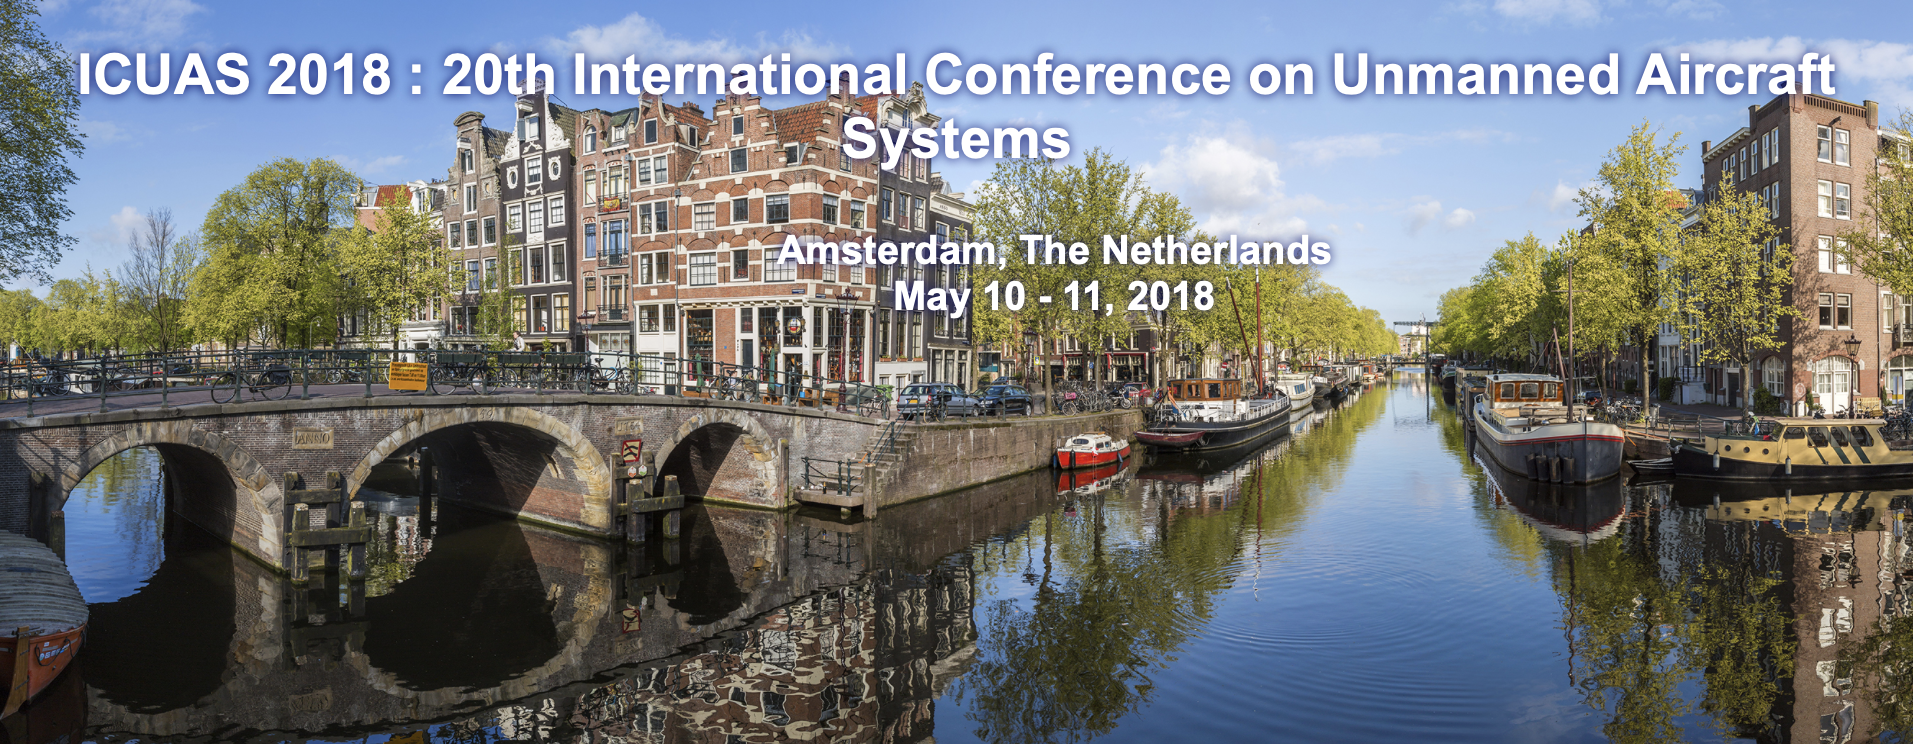 AiRT in ICUAS 2018: 20th International Conference on Unmanned Aircraft Systems